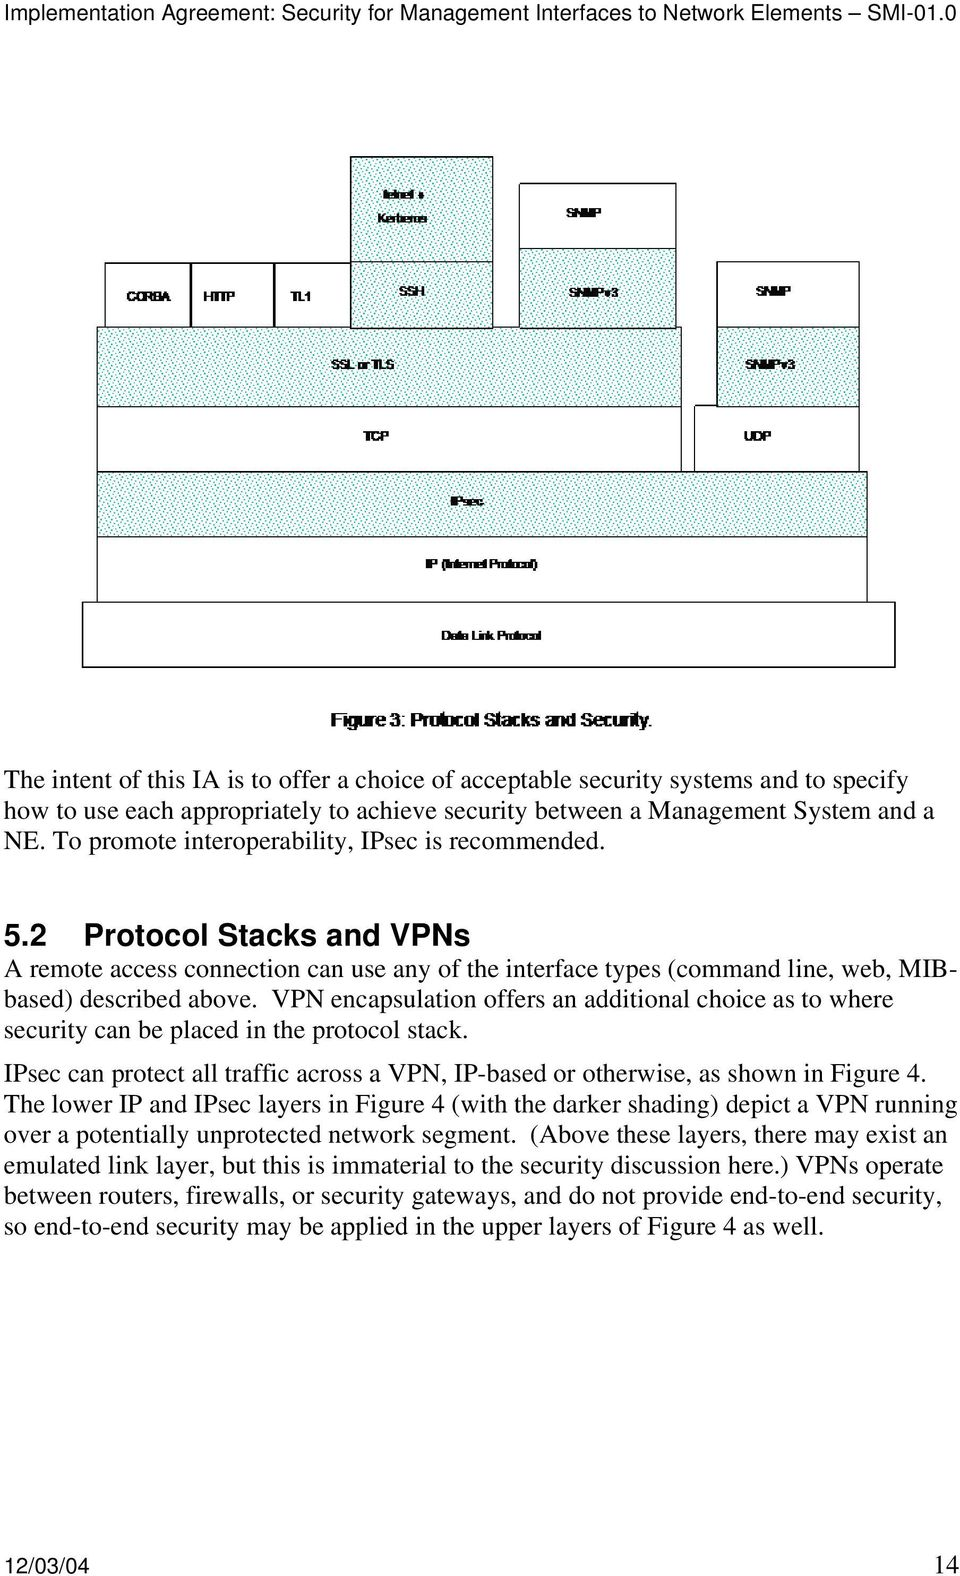 VPN encapsulation offers an additional choice as to where security can be placed in the protocol stack. IPsec can protect all traffic across a VPN, IP-based or otherwise, as shown in Figure 4.